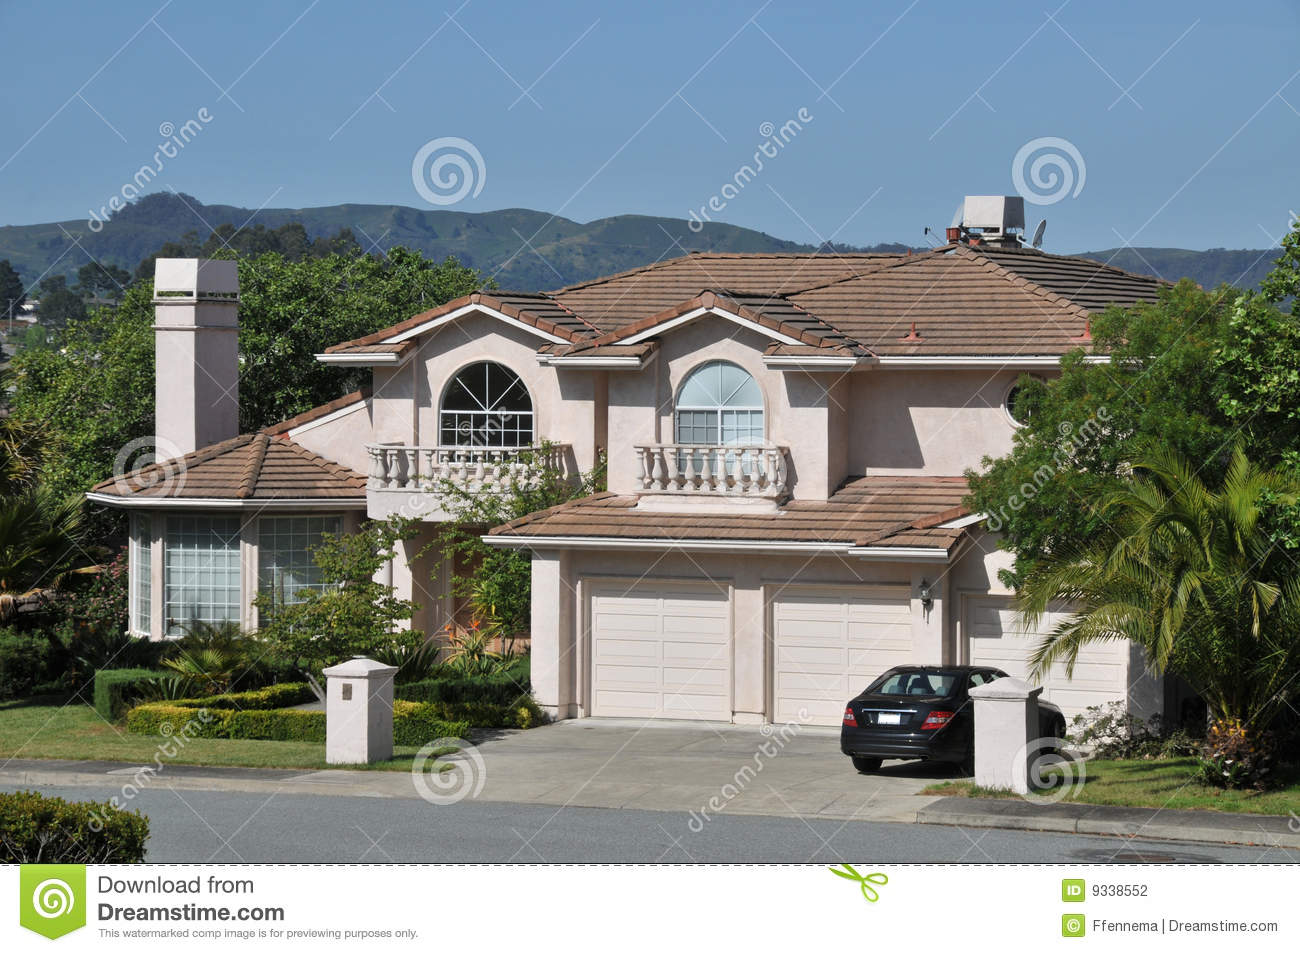 Modern House With Car In Driveway Stock Photography